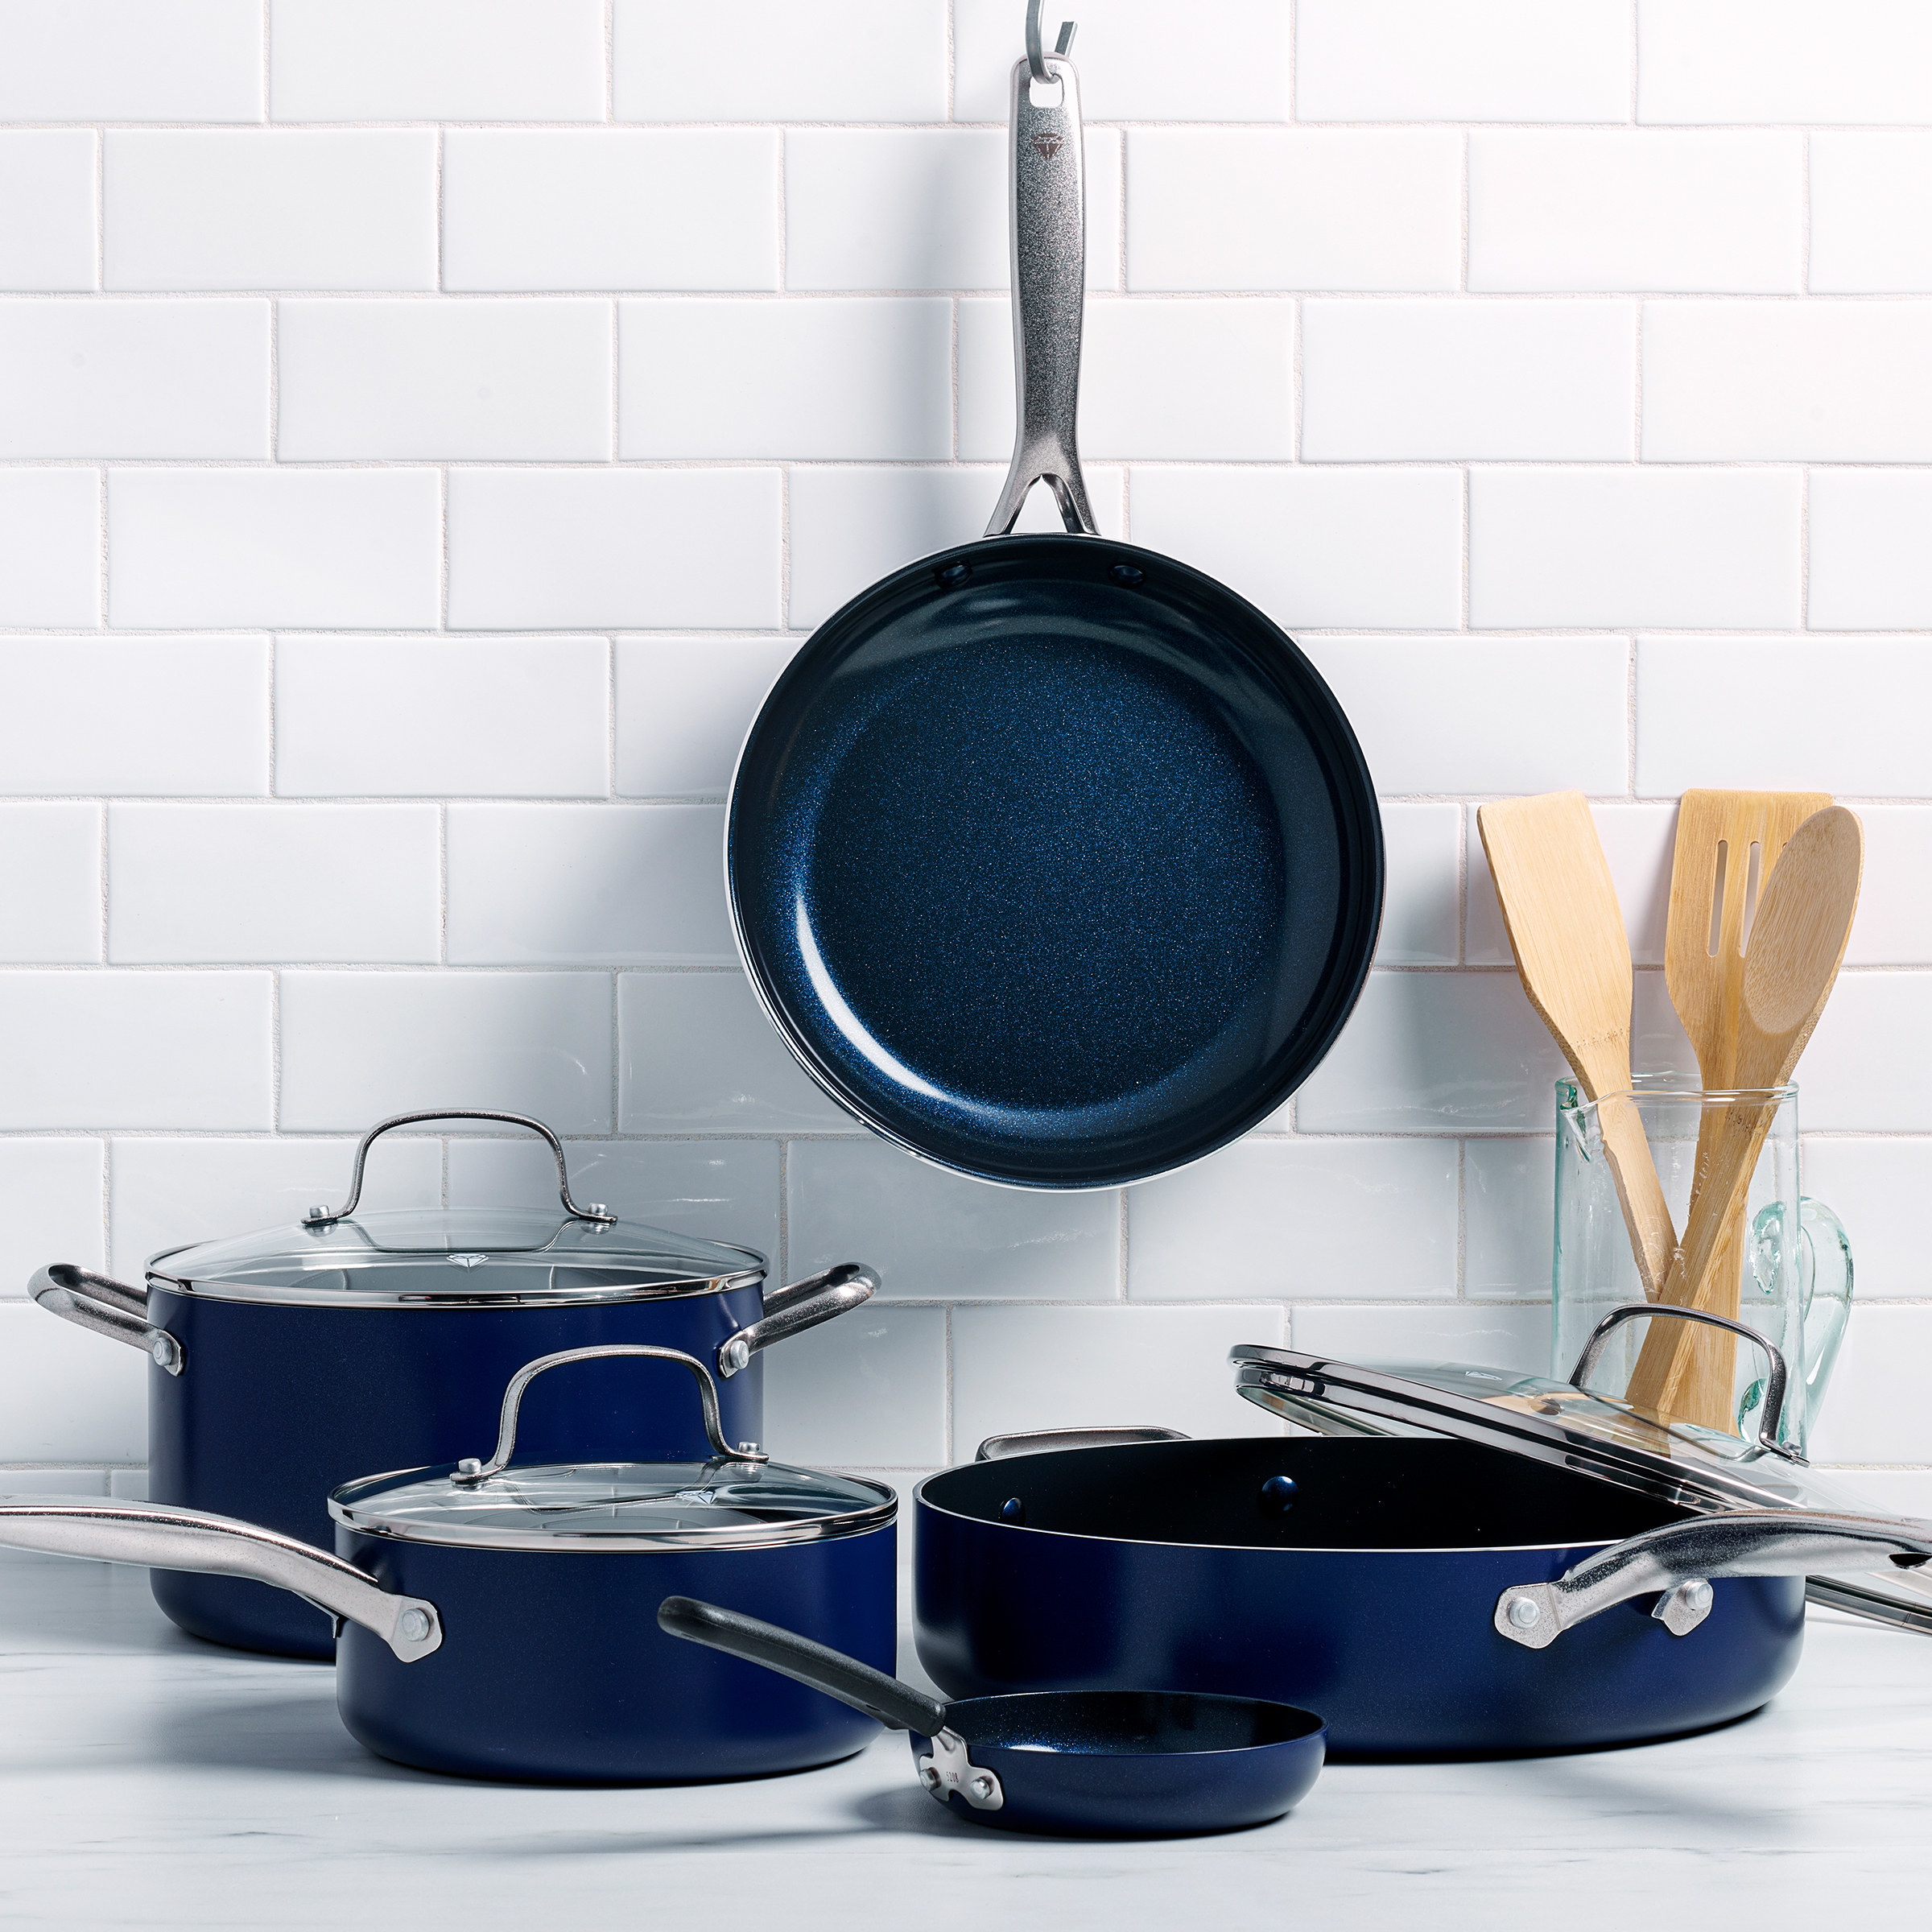 blue cookware set on a kitchen counter